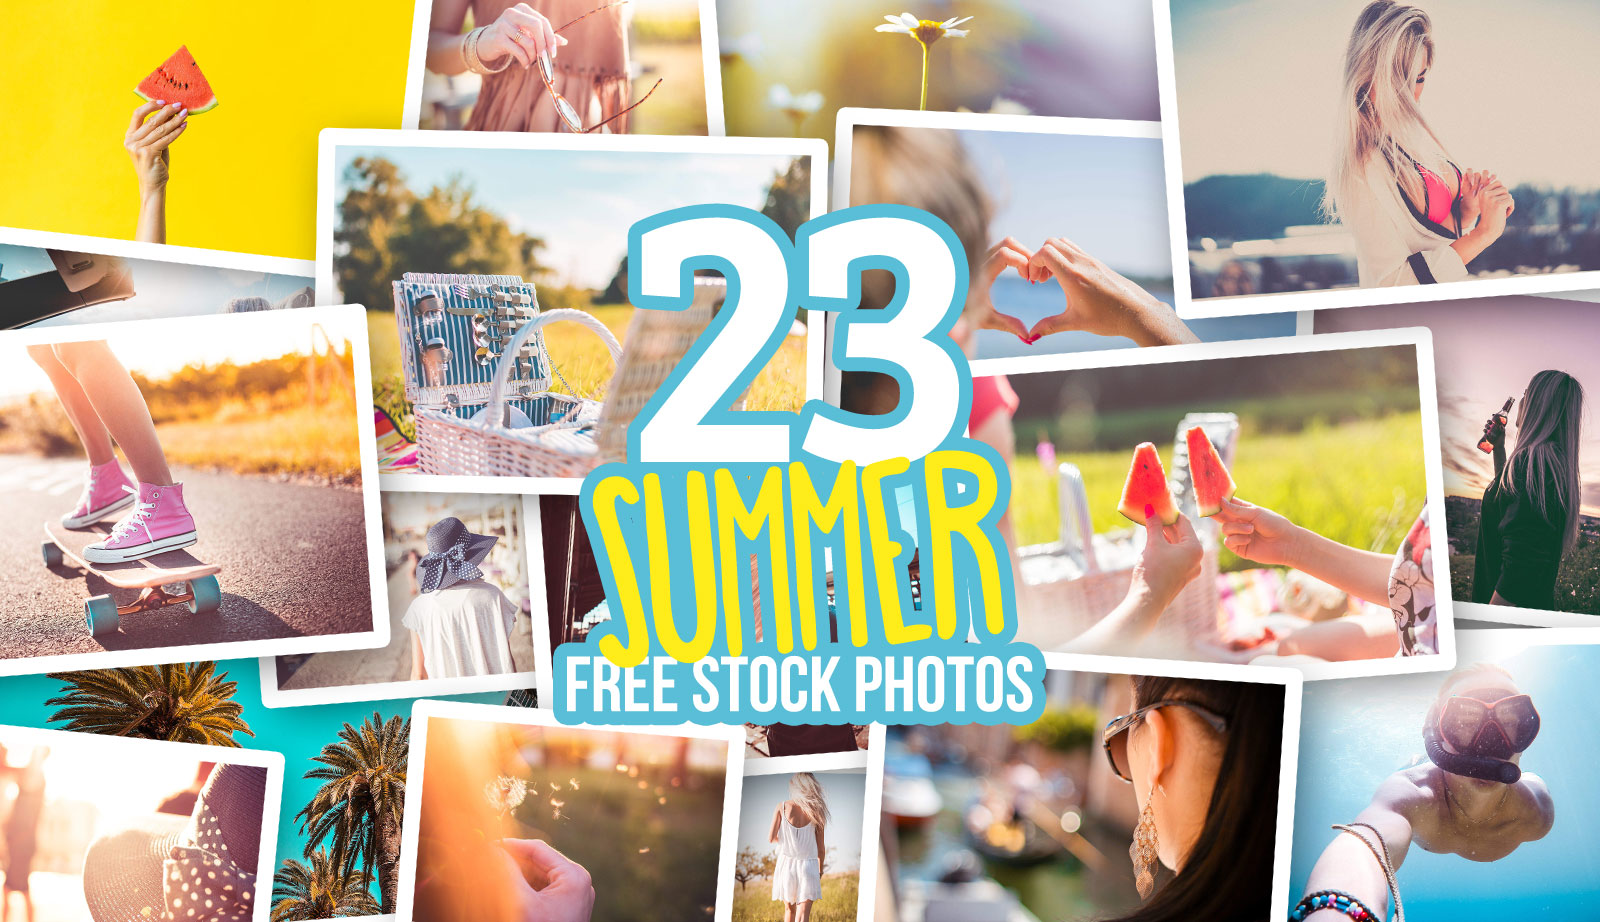 23 Beautiful FREE Stock Photos of Summer You Shouldn't Miss — picjumbo BLOG